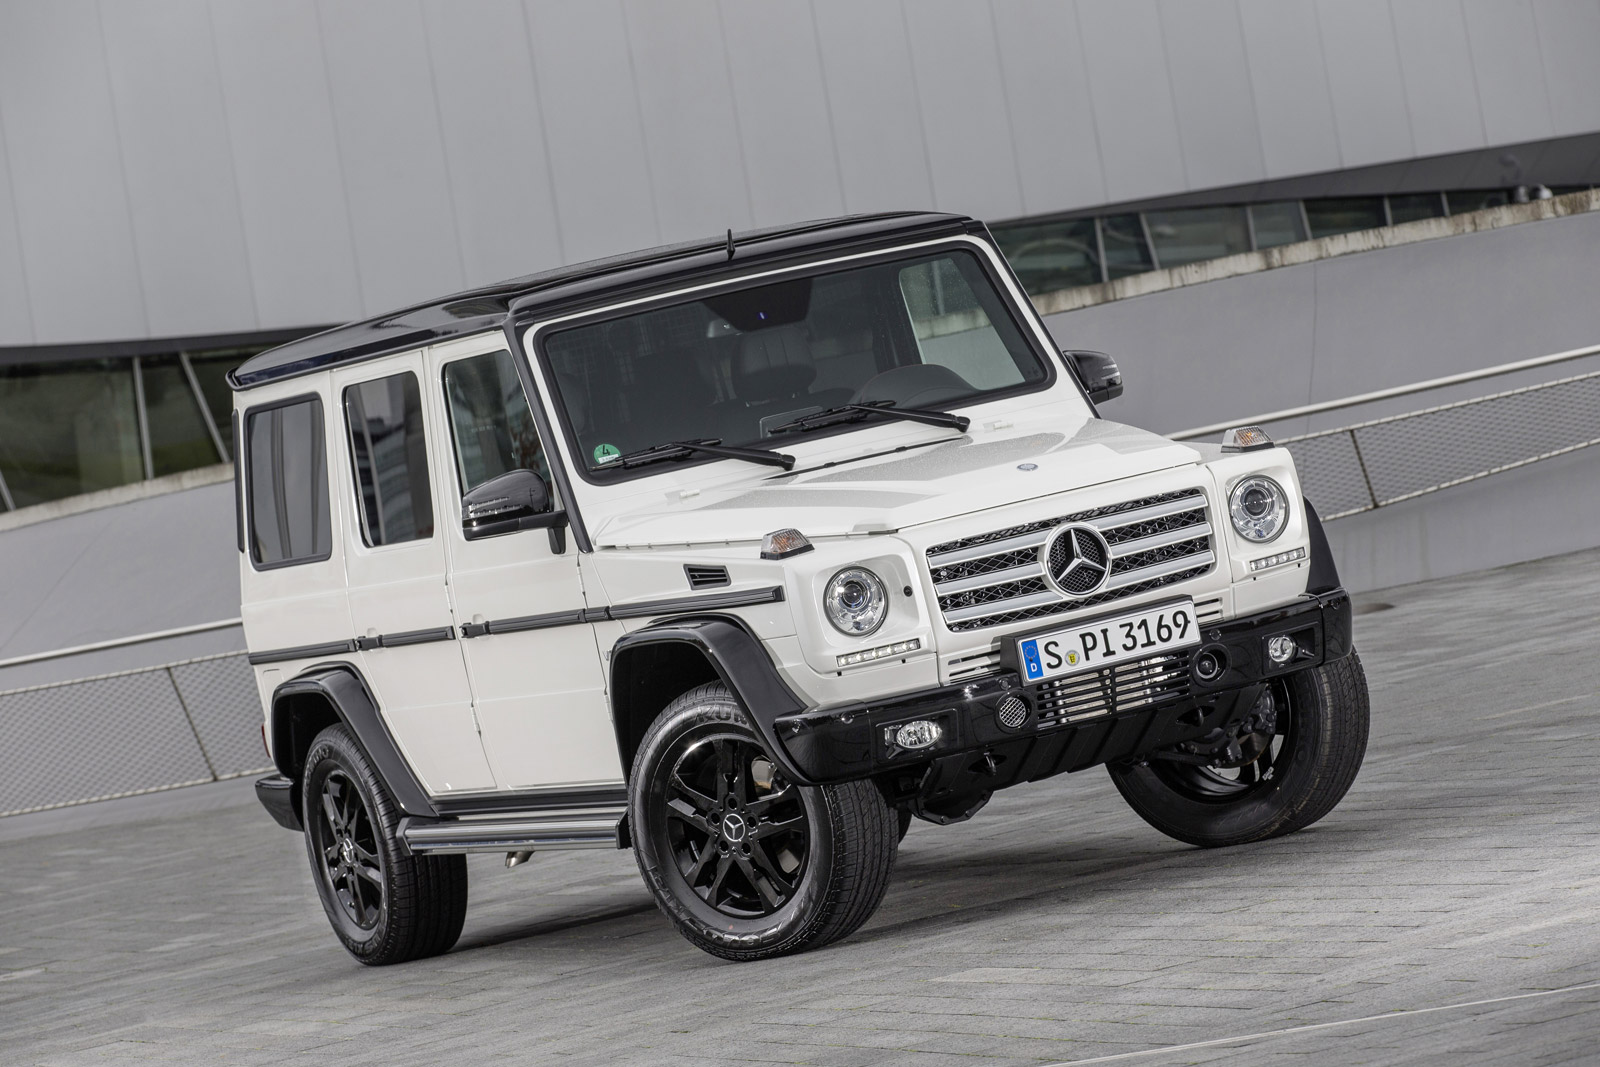 Mercedes-Benz celebrates 35 years of the G-Class